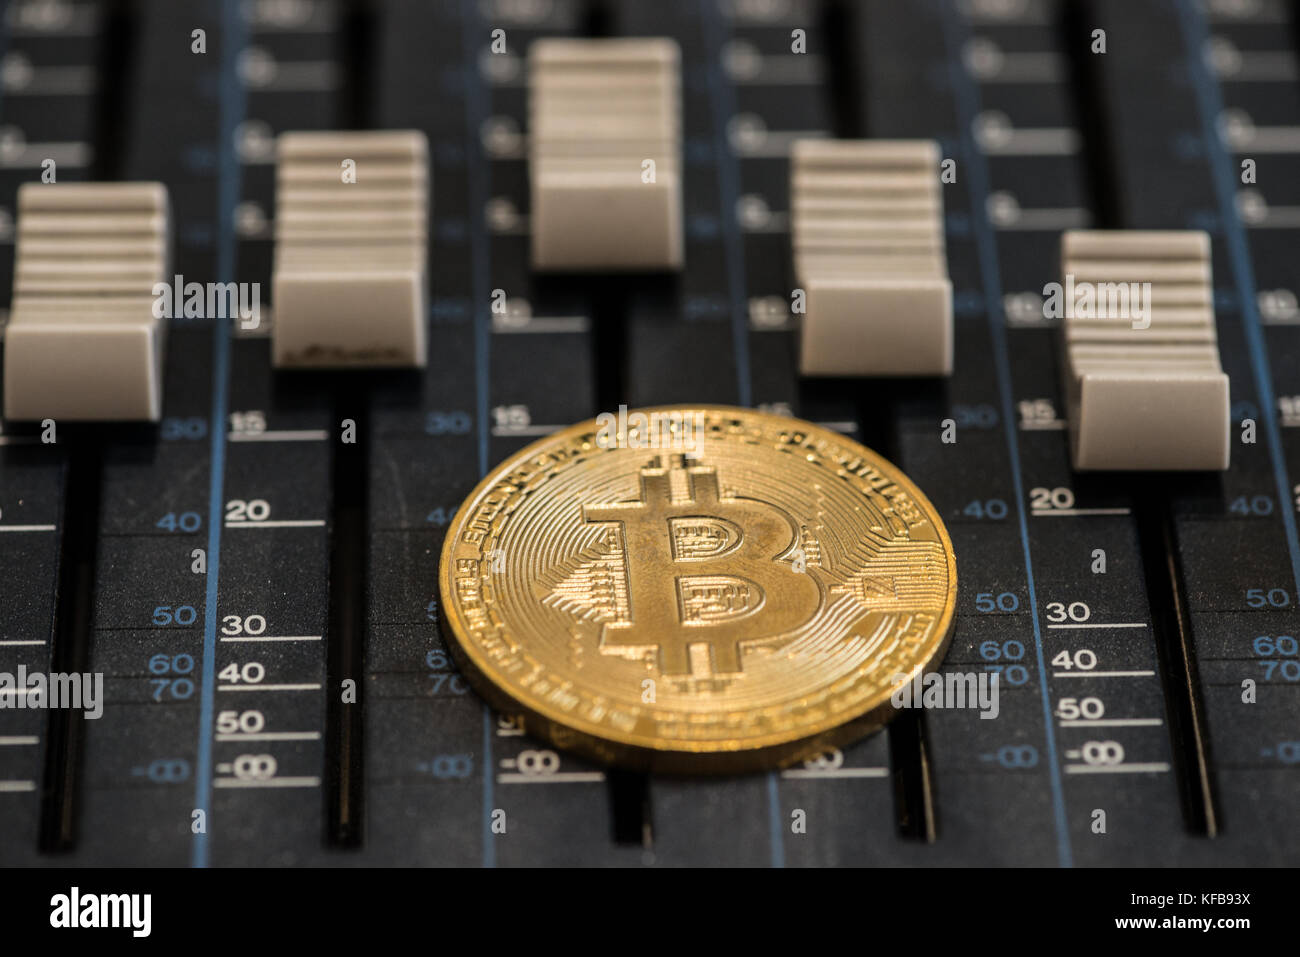 Tuppeny bitcoins binary code options trading scams using paypal